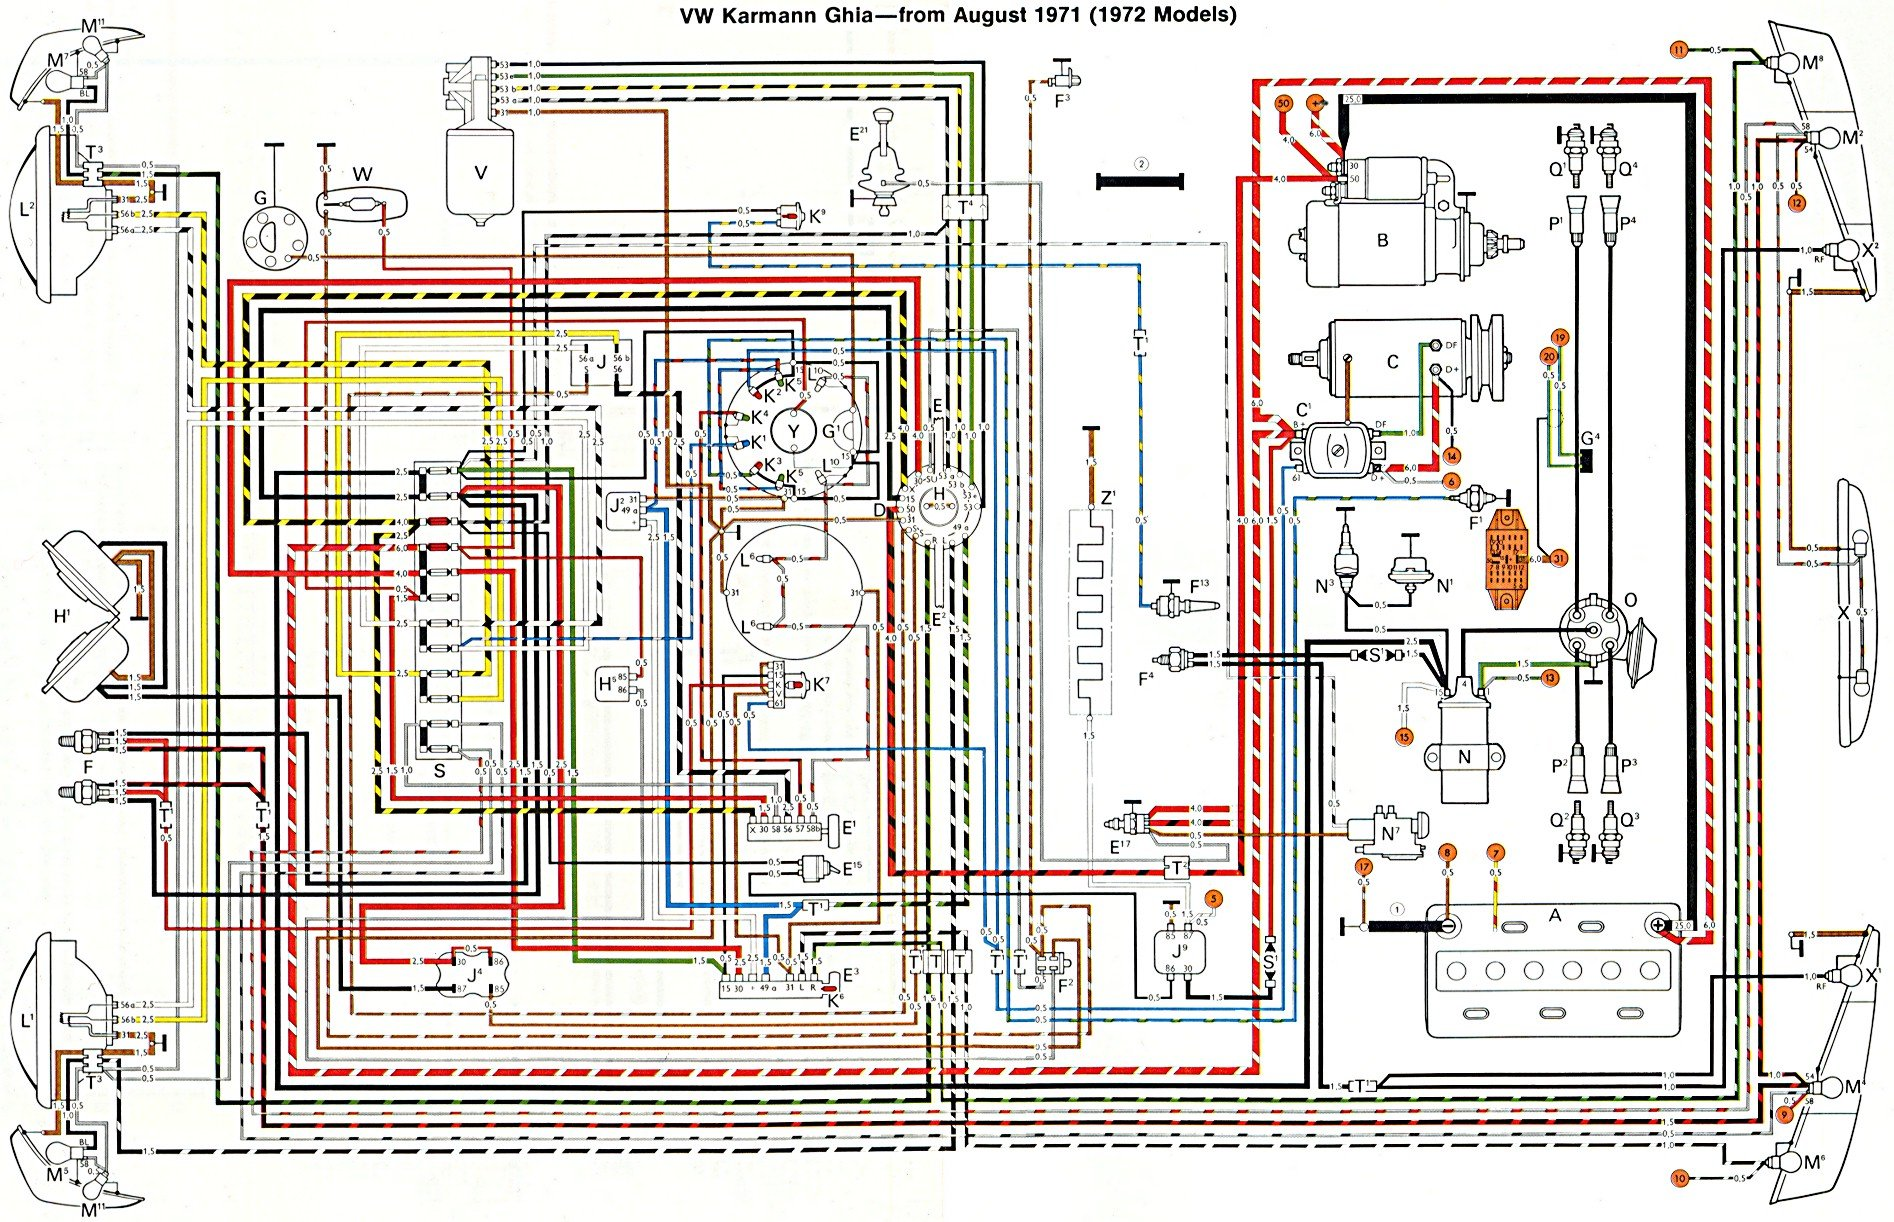 72ghia thesamba com karmann ghia wiring diagrams 914 wiring diagram at gsmx.co